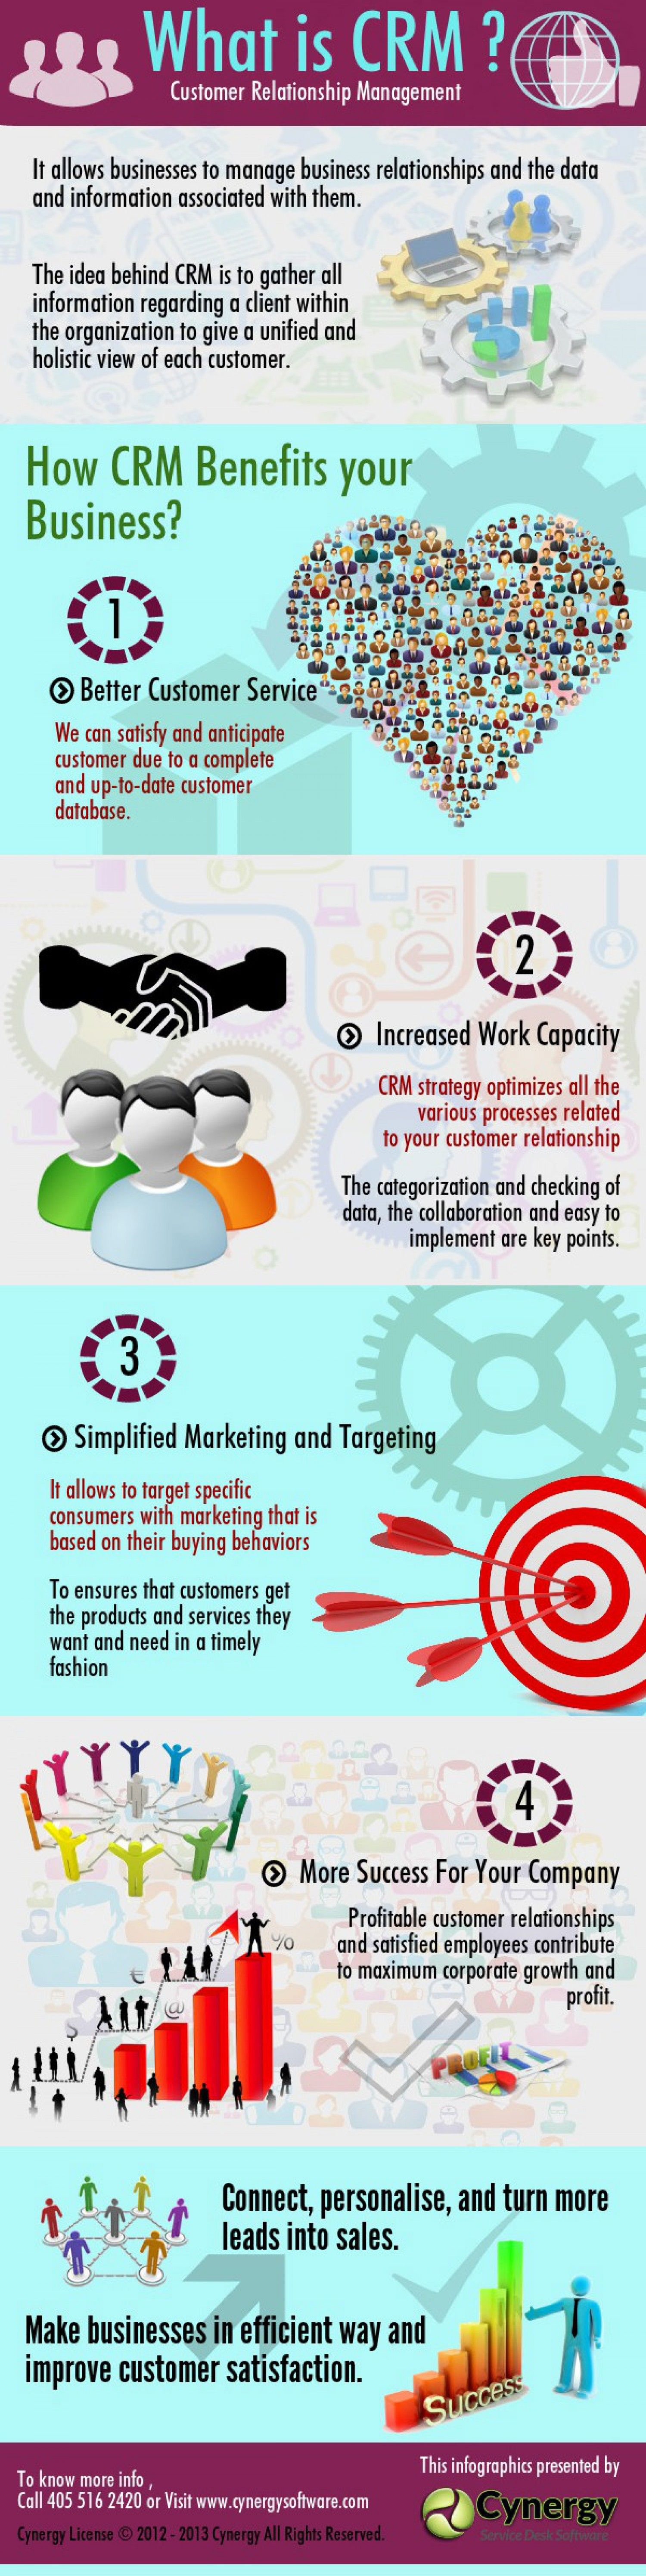 What Is Crm Visual Ly Customer Relationship Management Customer Relationship Marketing Crm